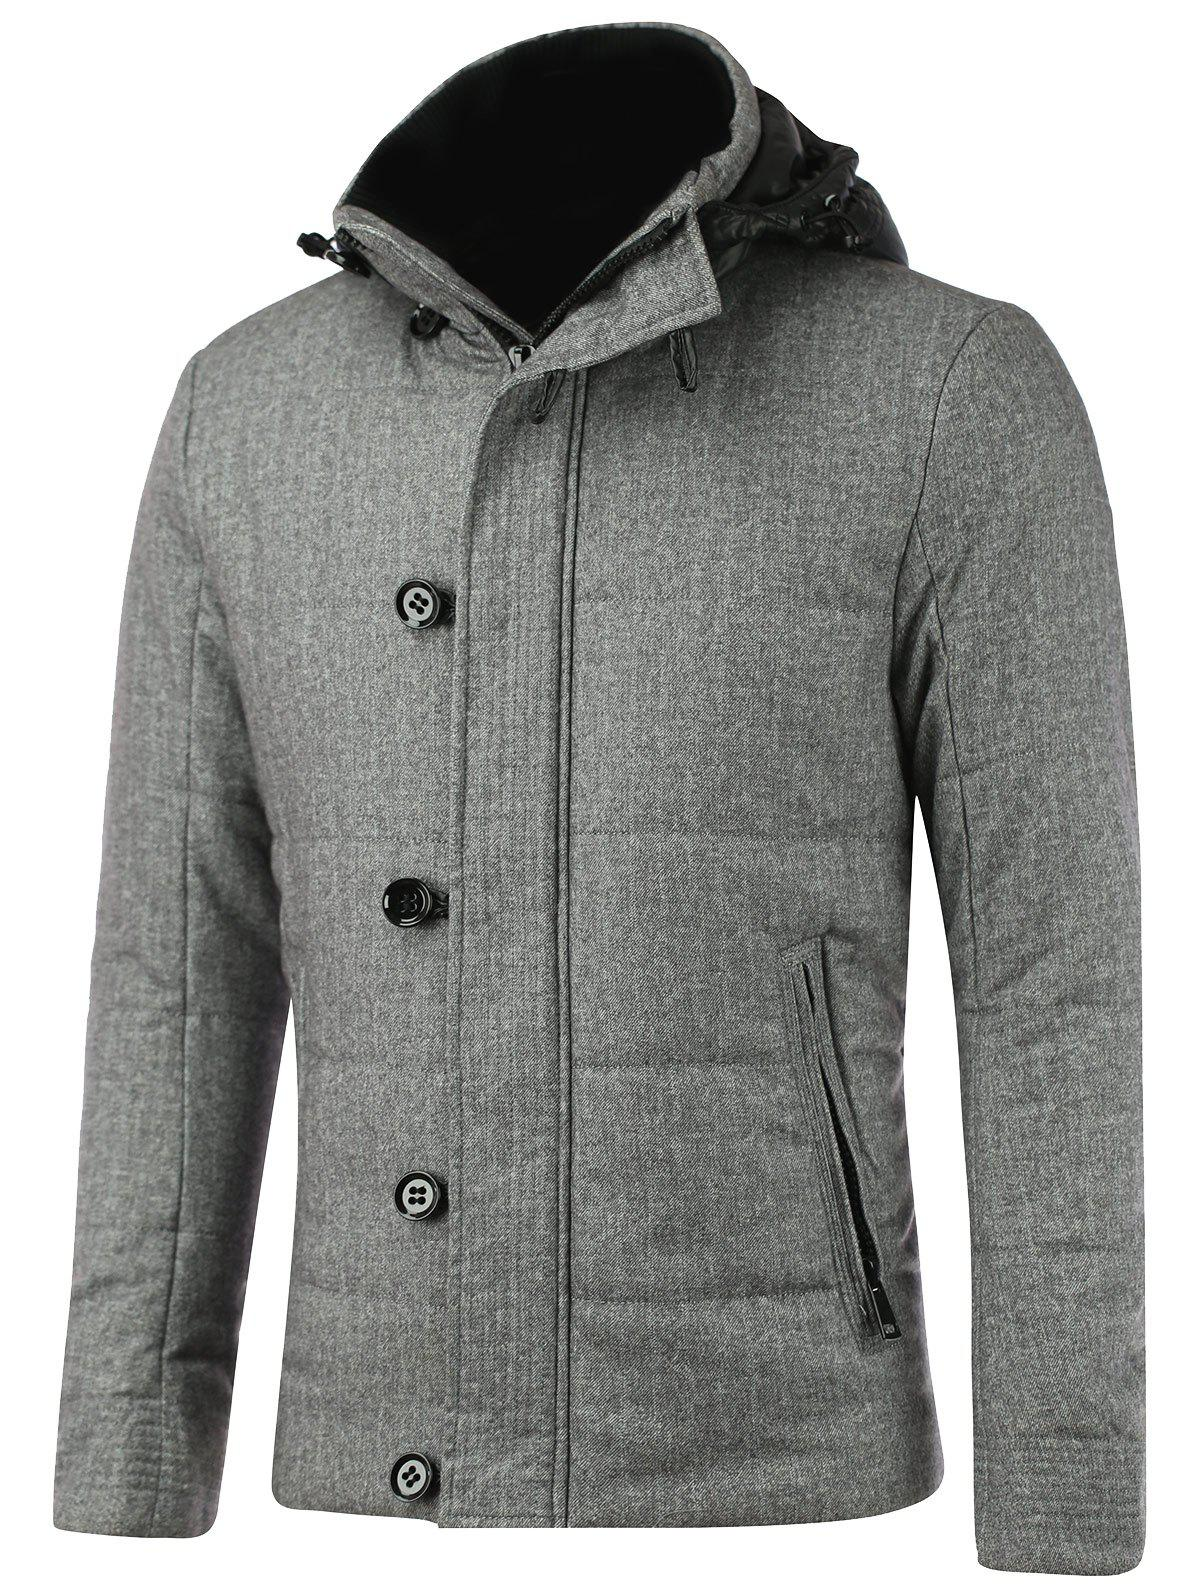 Zippered Button Embellished Hooded Texture Padded Jacket technisub flexus dry